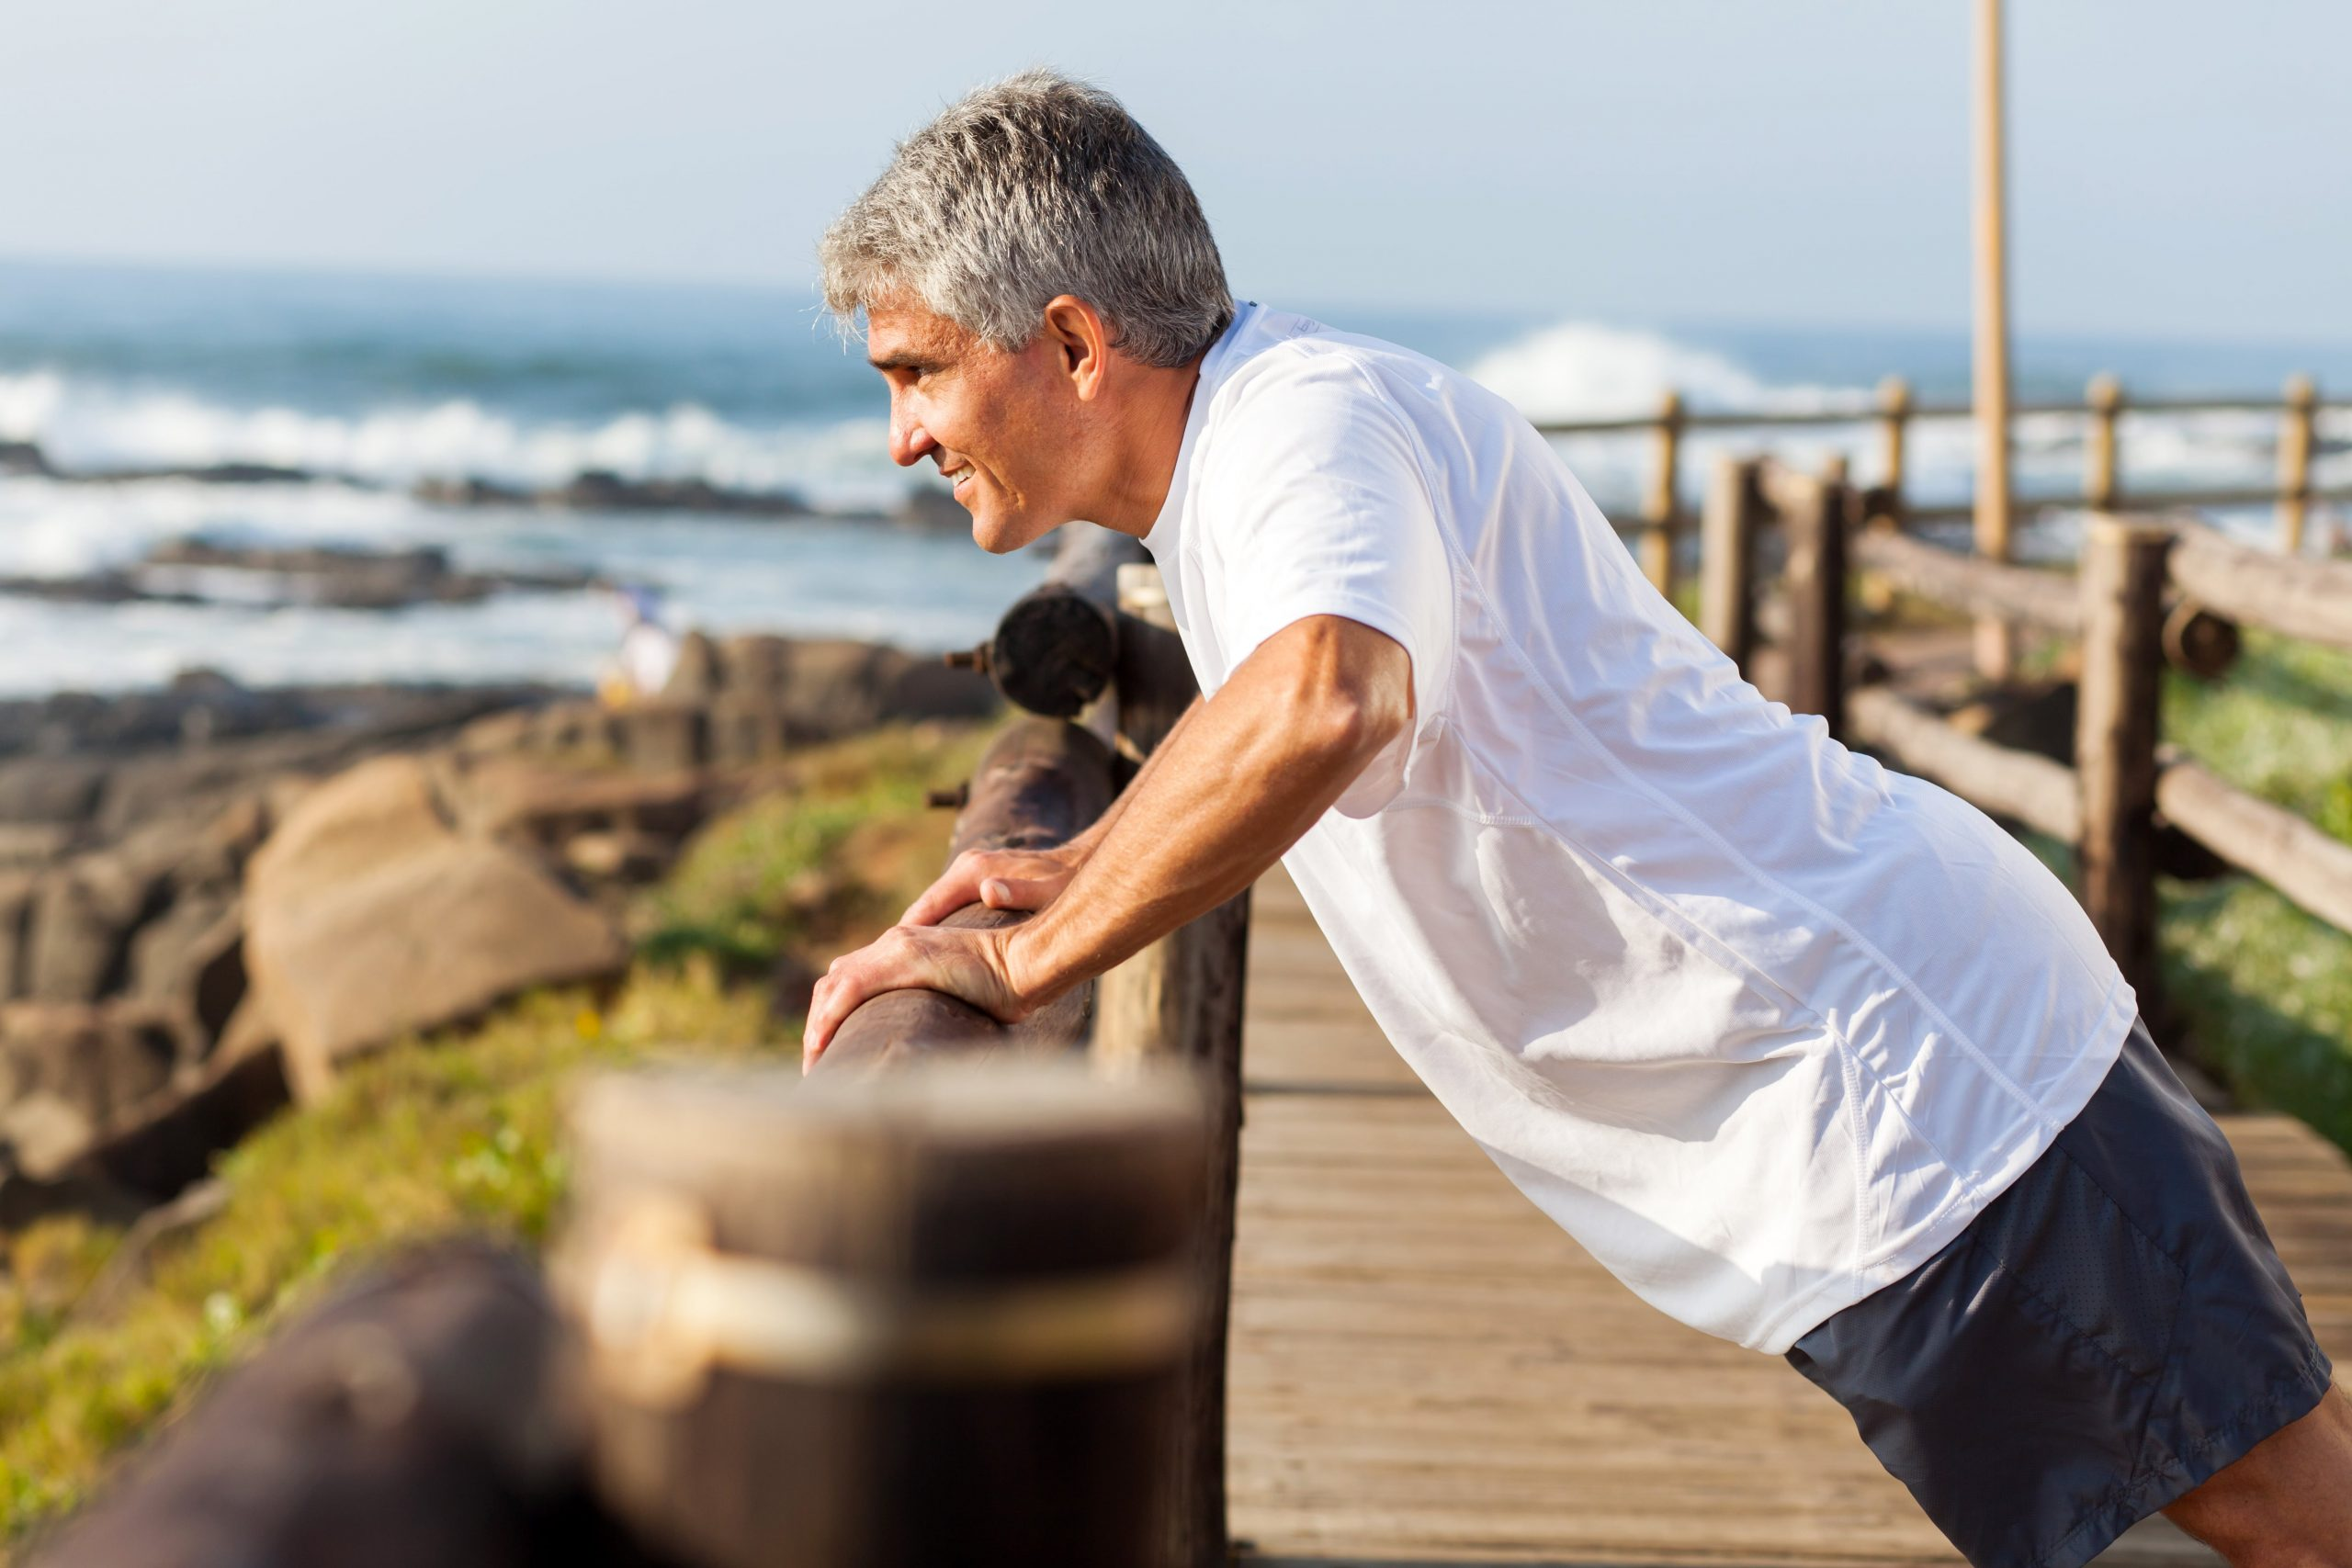 Older man stretching against a railing over the ocean